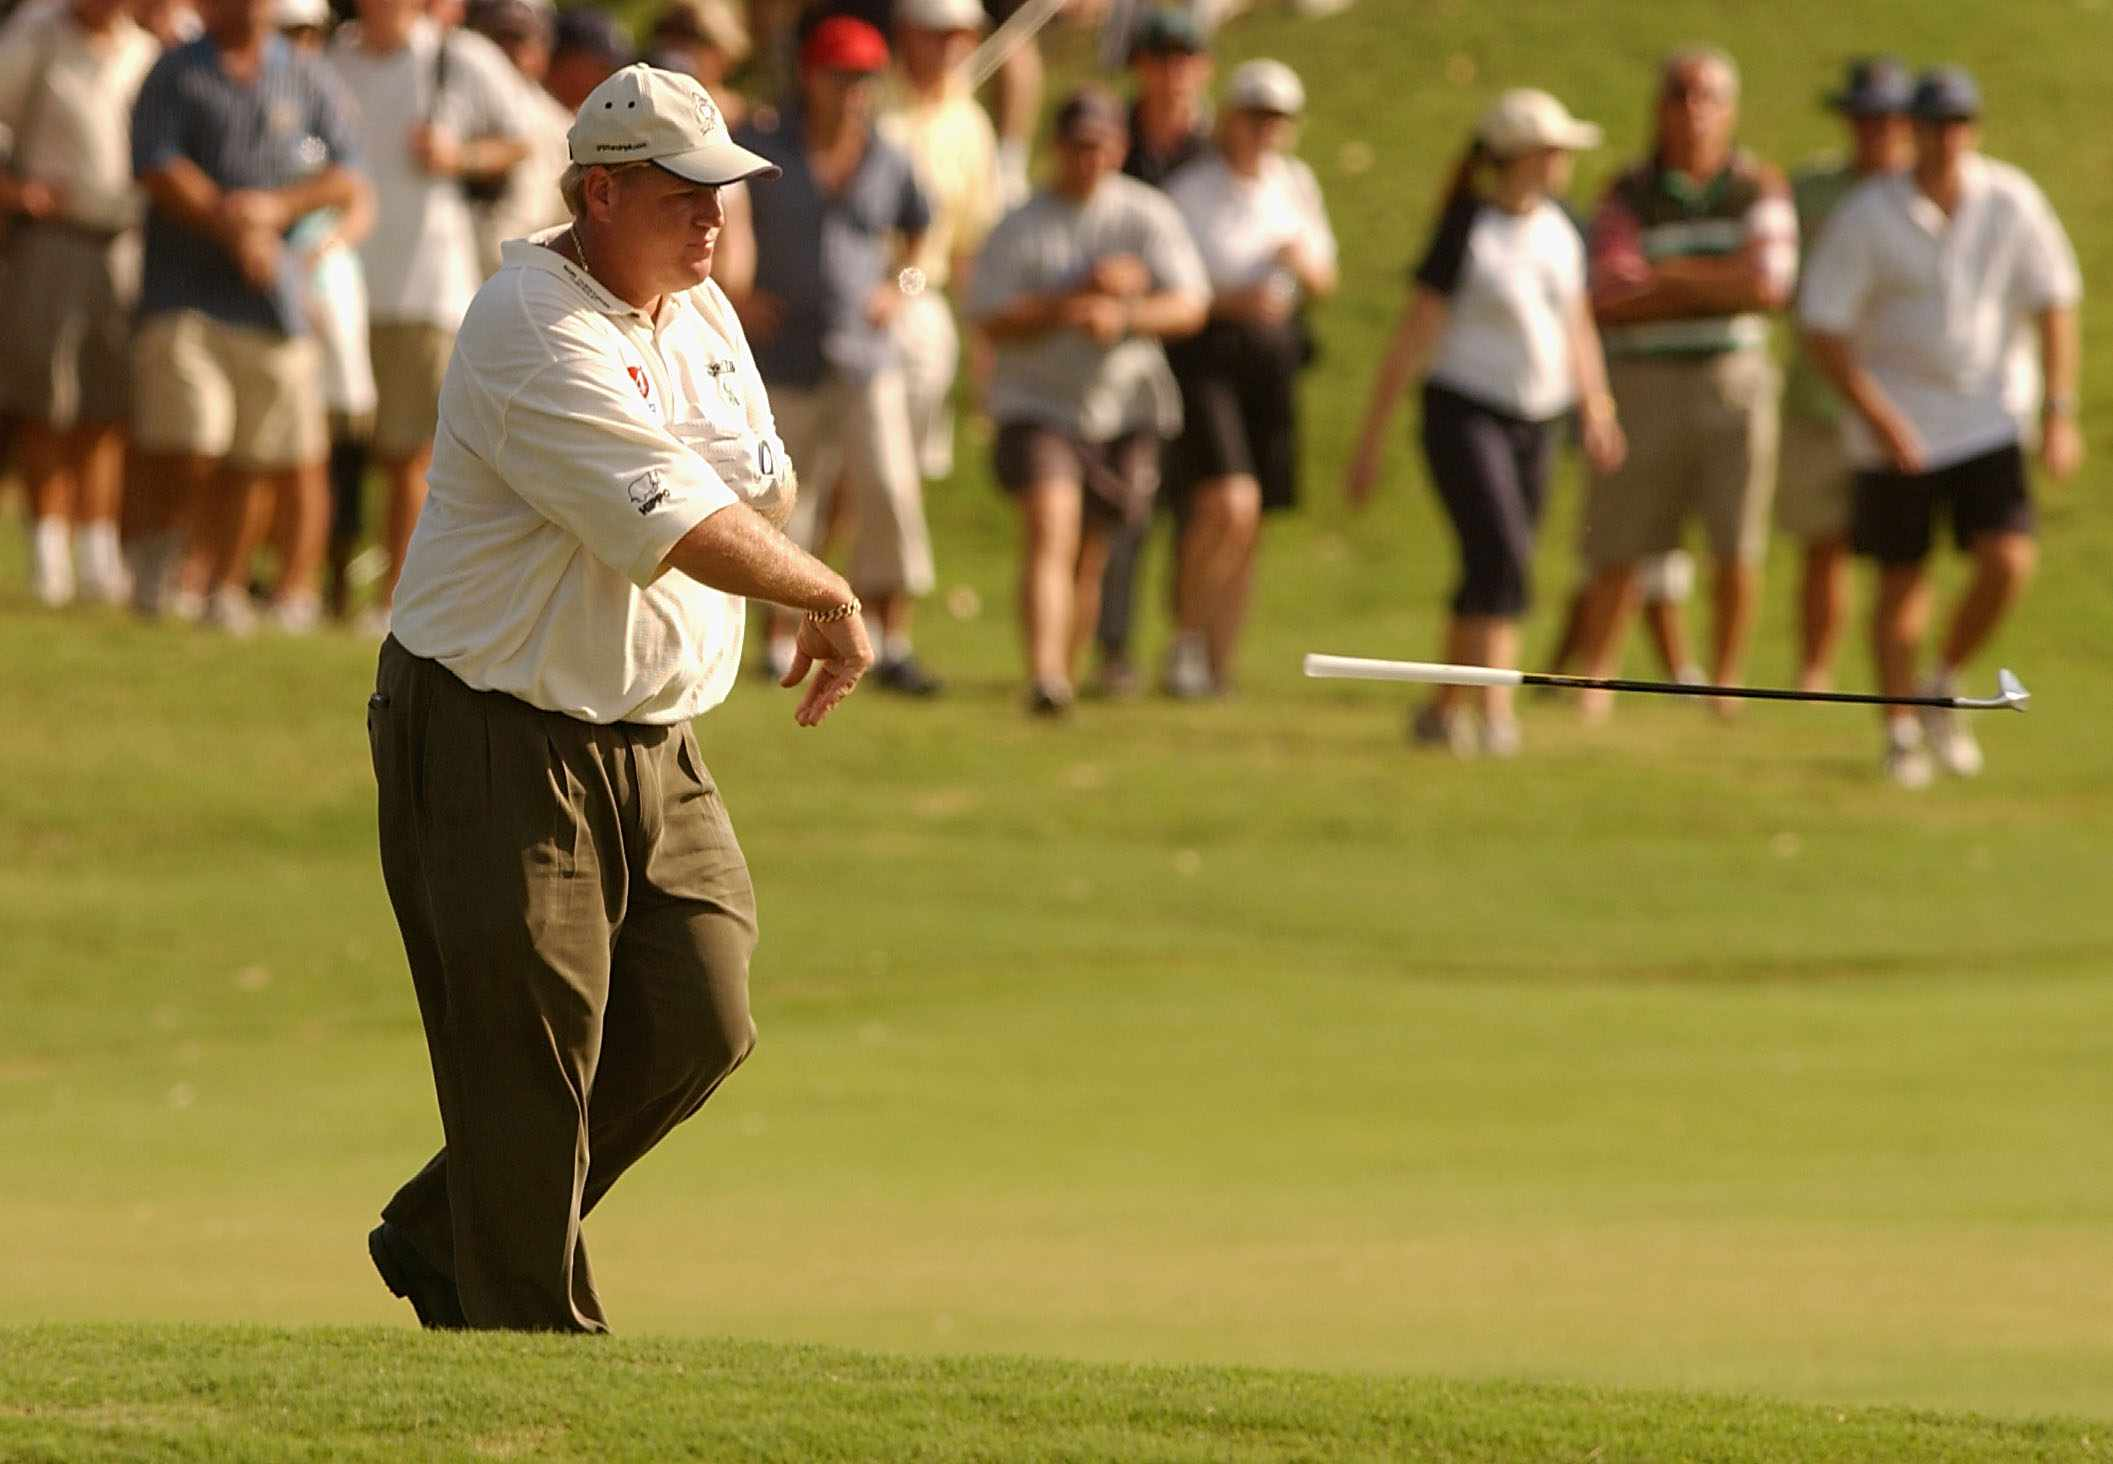 John Daly of the USA throws his iron after having to take a drop when his approach shot hit an officials cart and ran into the water on the 13th hole during round two of the Australian PGA Championships at the Hyatt Regency Golf Course, Sunshine Coast, Australia on November 29, 2002.